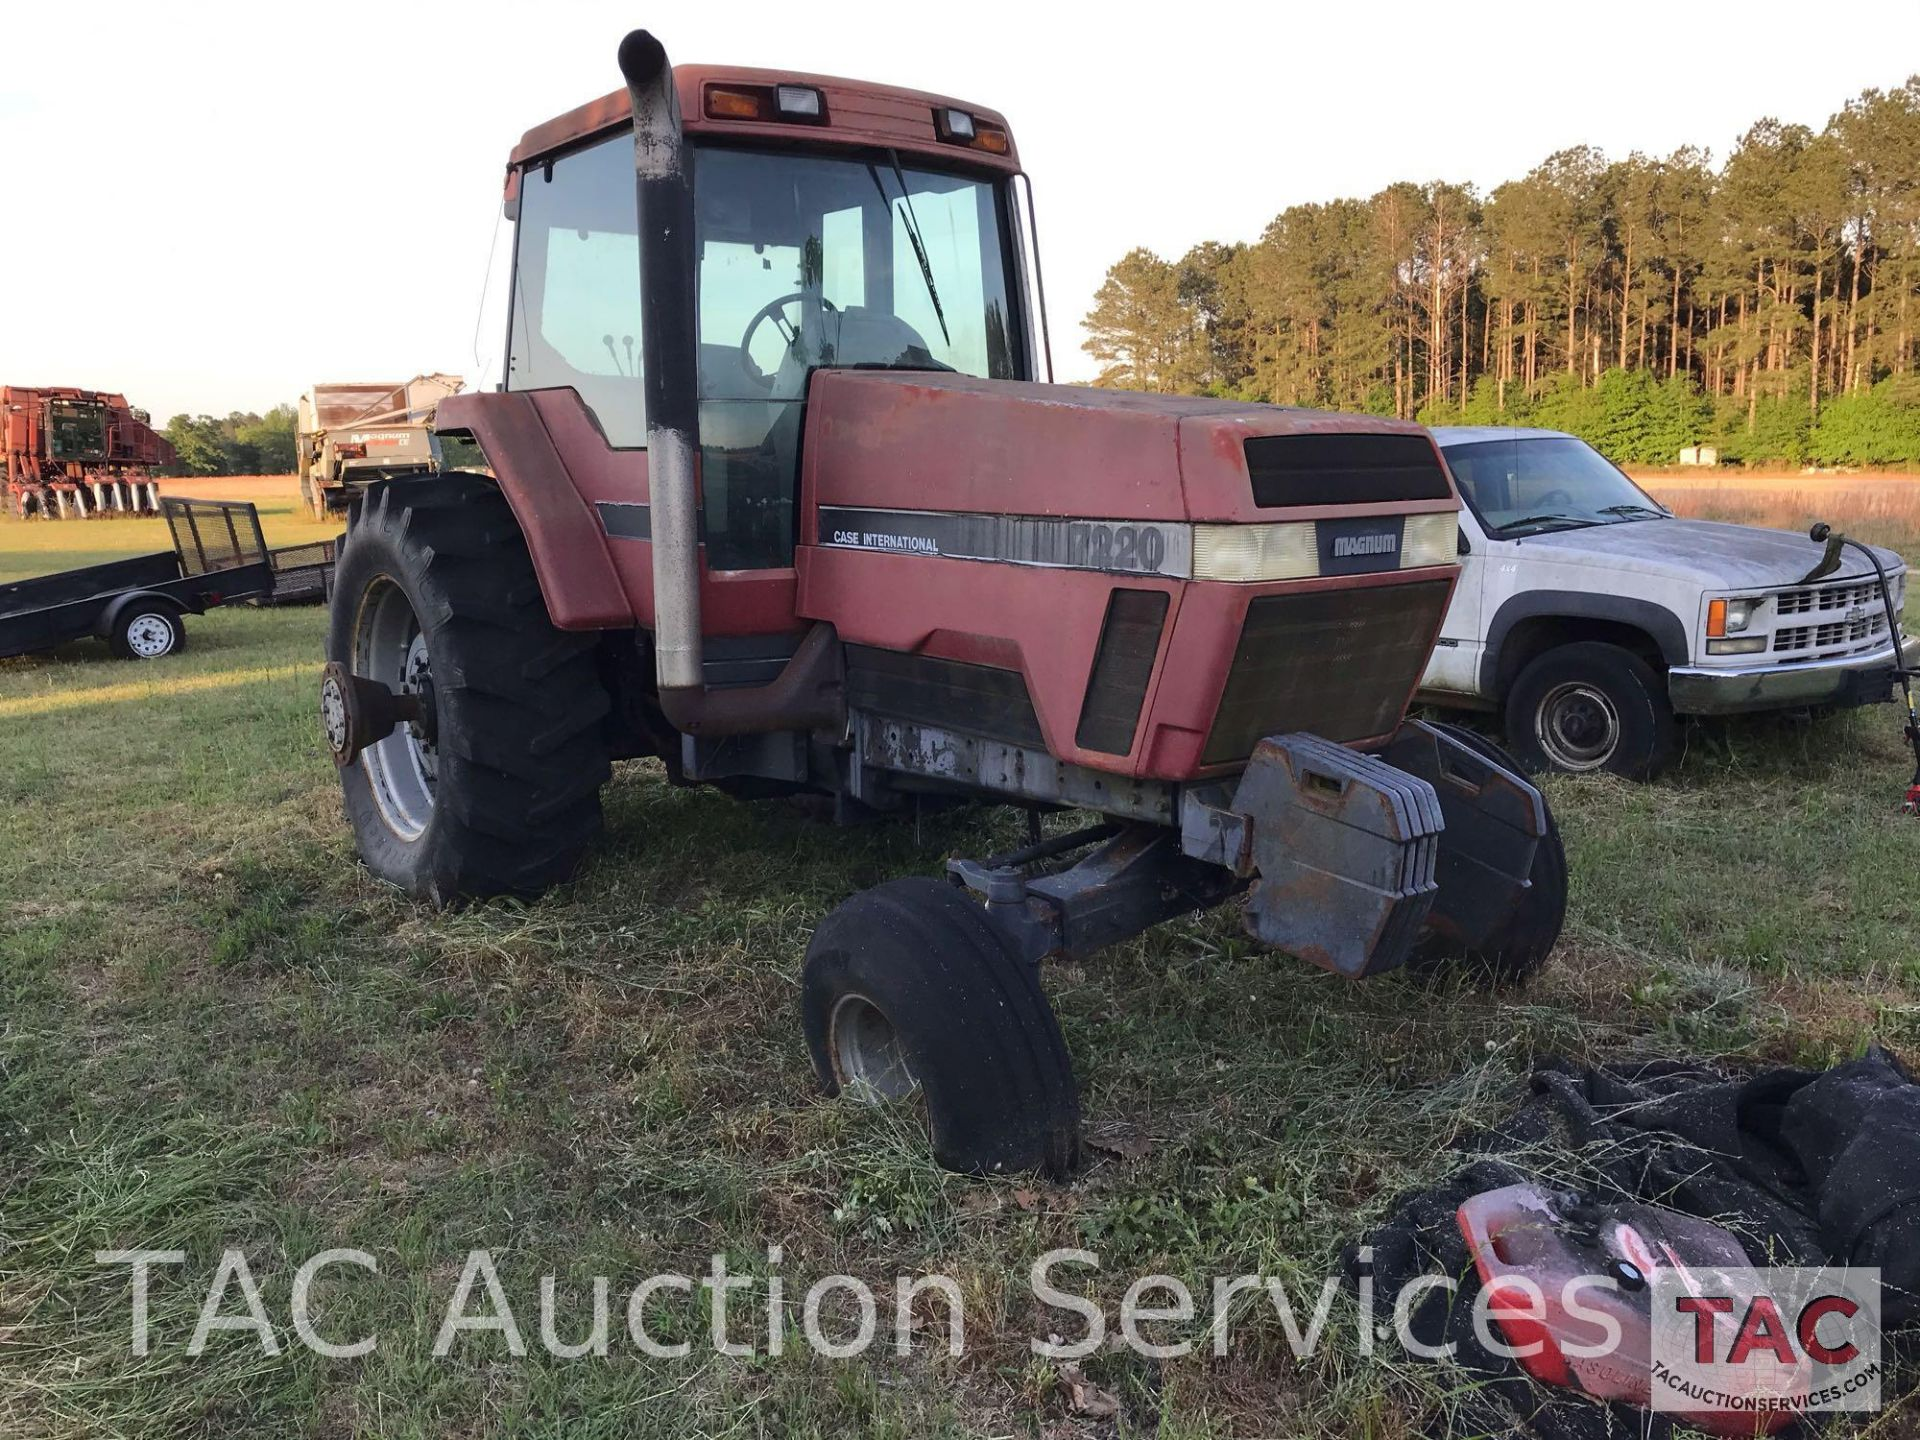 Case International 70 to 20 Magnum Farm Tractor - Image 3 of 25